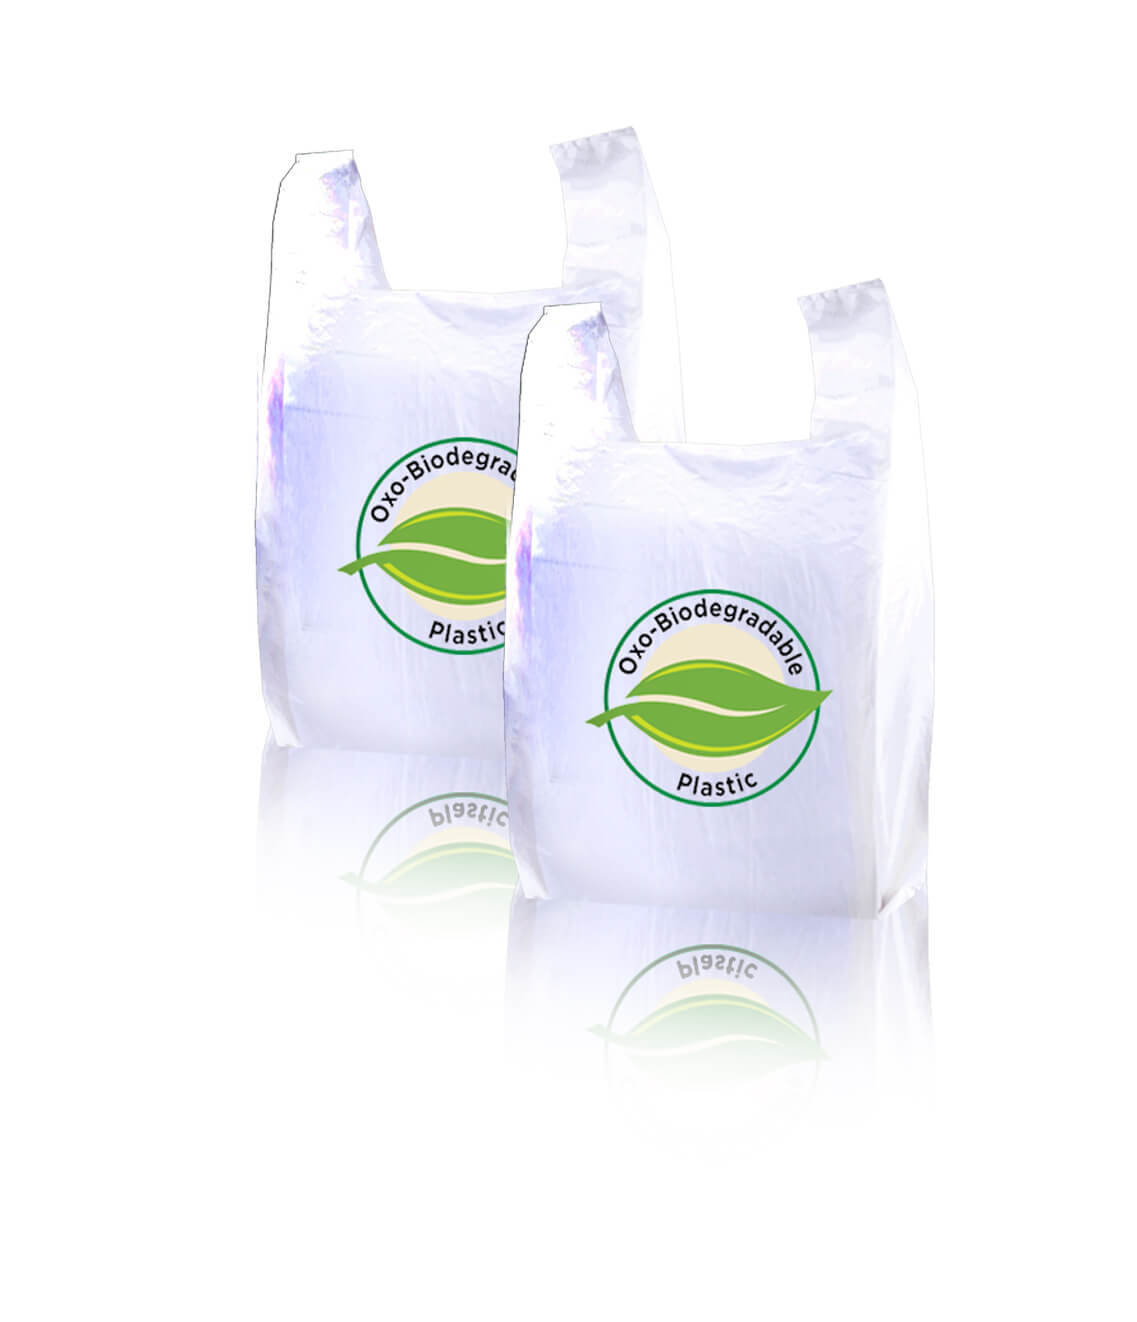 Oxo Biodegradable Bags Manufacturer In Uae Hygiene Links